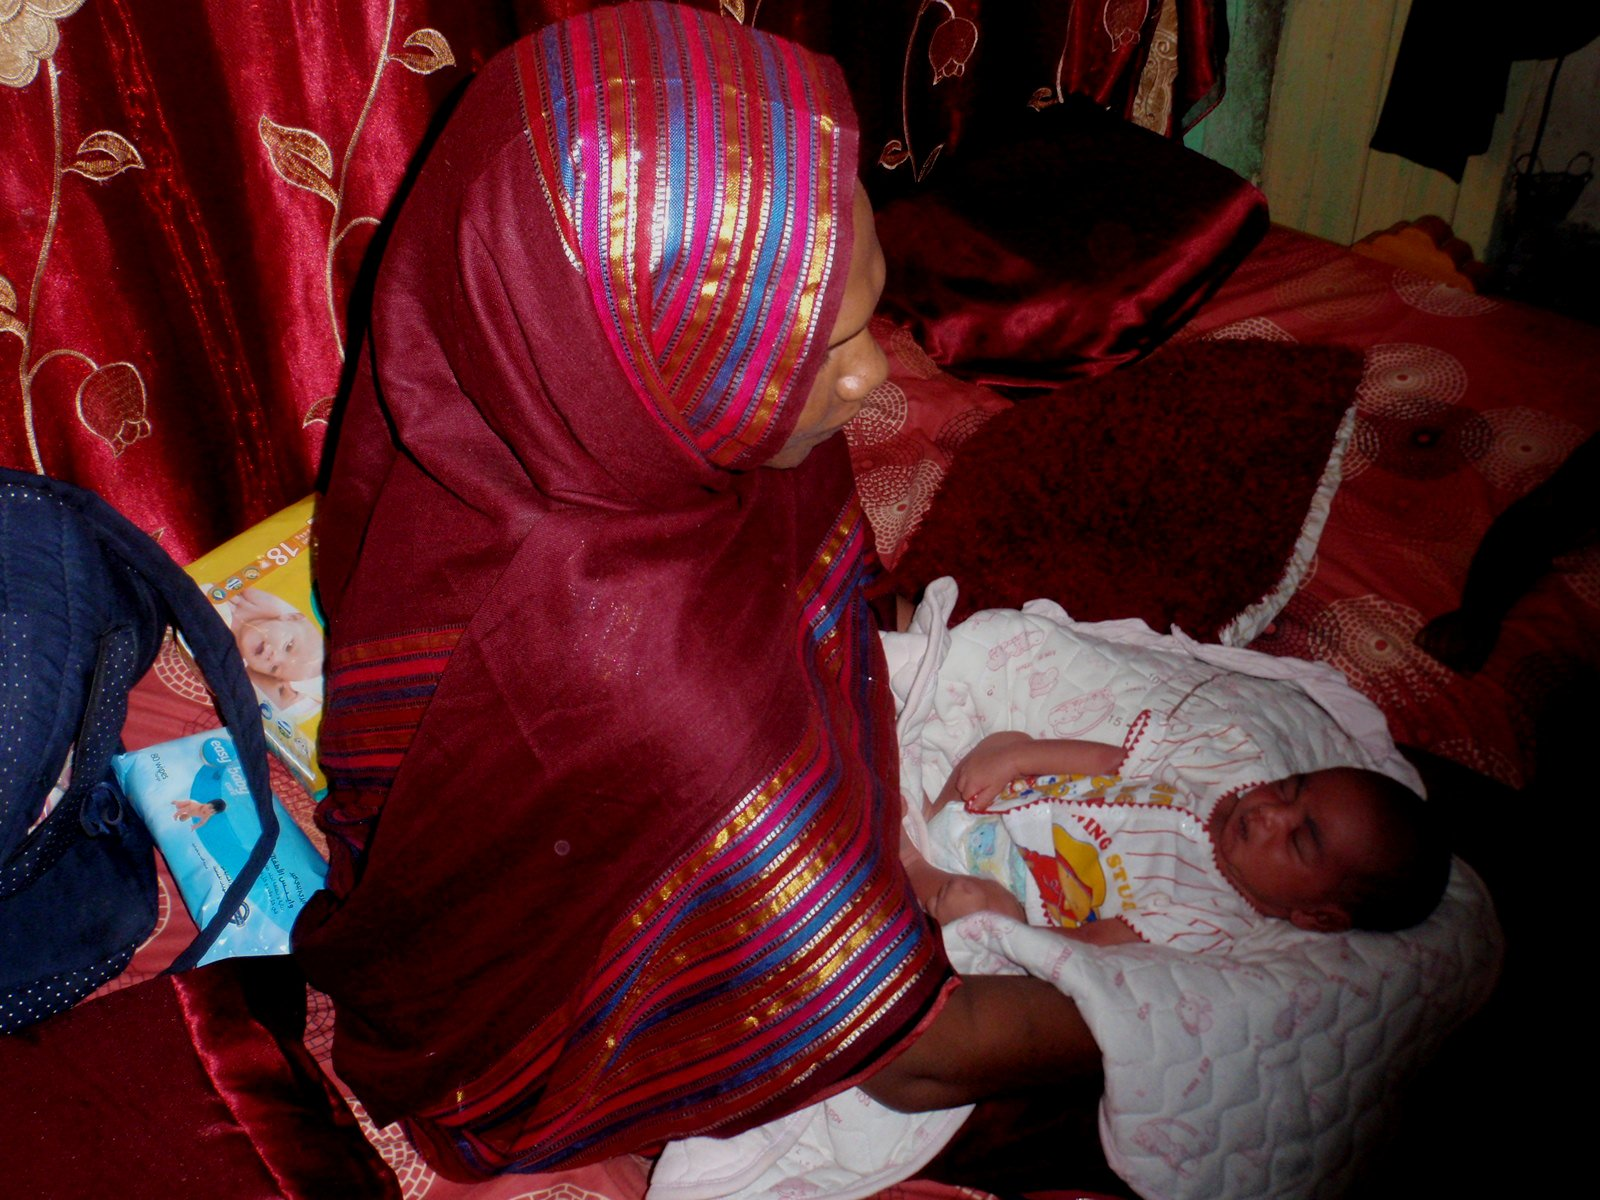 Sudanese wedding rituals and traditions - Leila Is An Effusive Host Eager To Please Even Though She Is Preoccupied With Her New Baby Who Is Just Three Weeks Old And Suffering From A Fever And